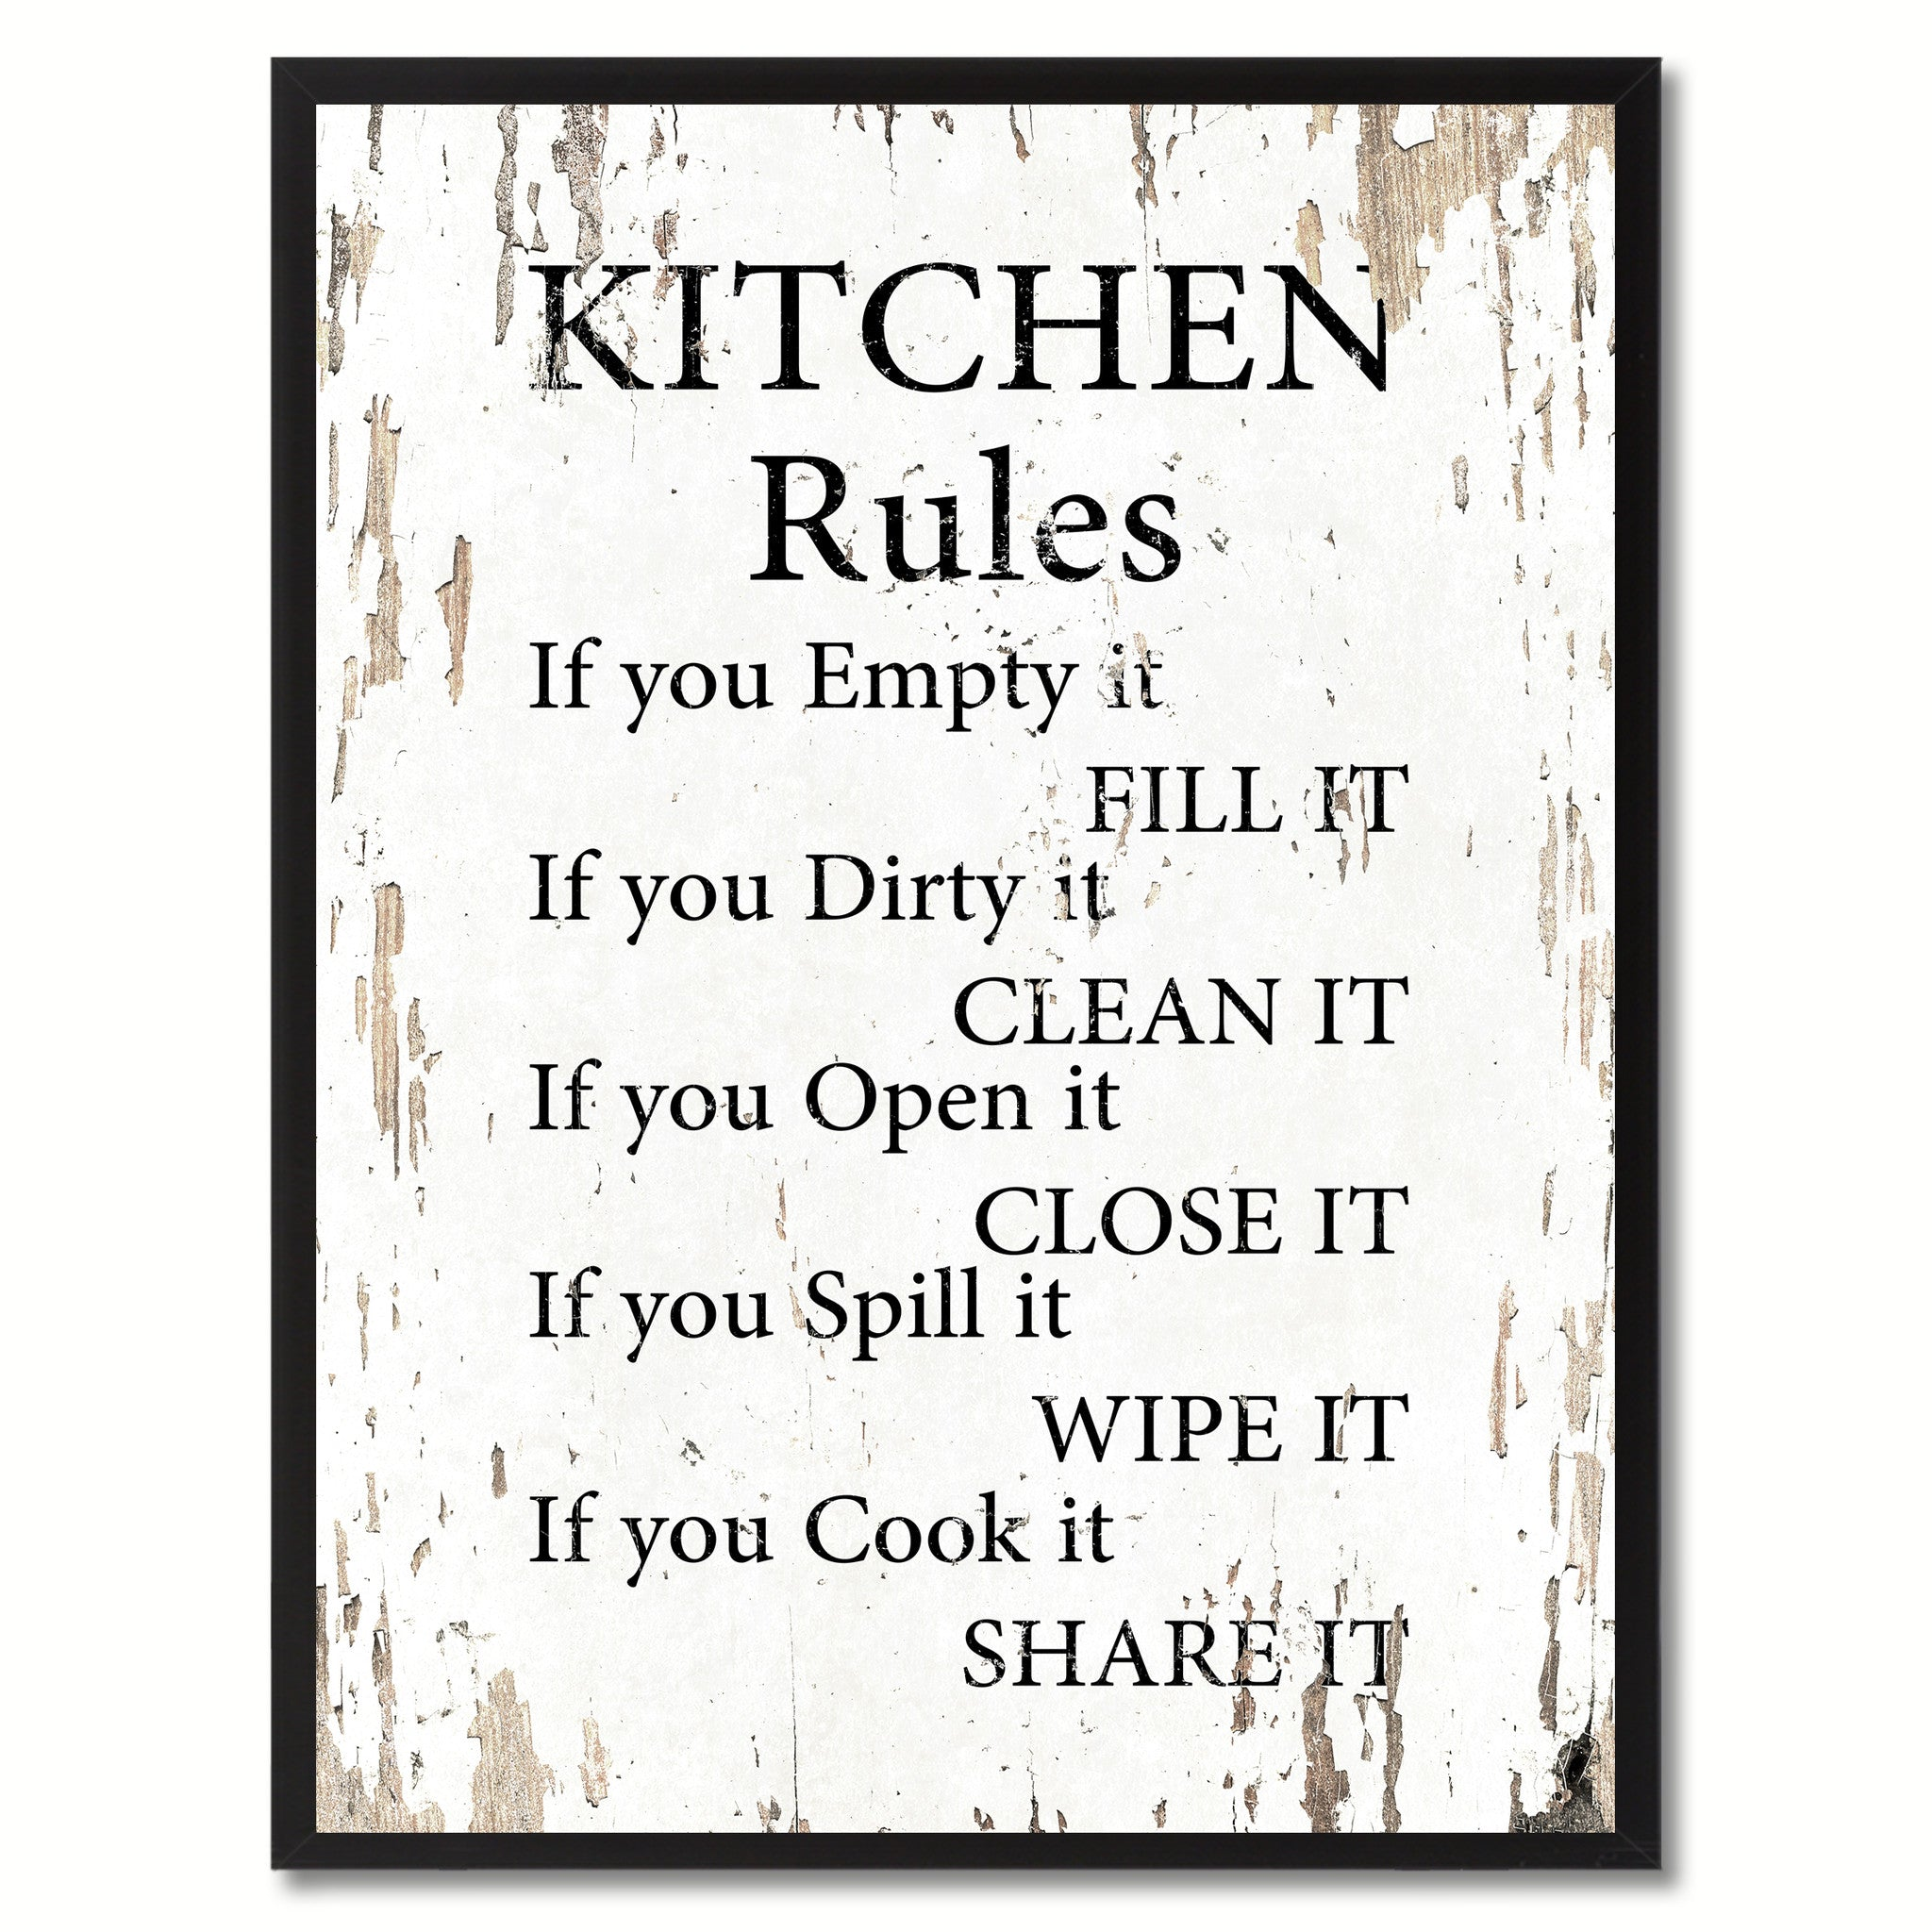 Kitchen Rules Inspirational Saying Motivation Quote Home Decor Wall ...